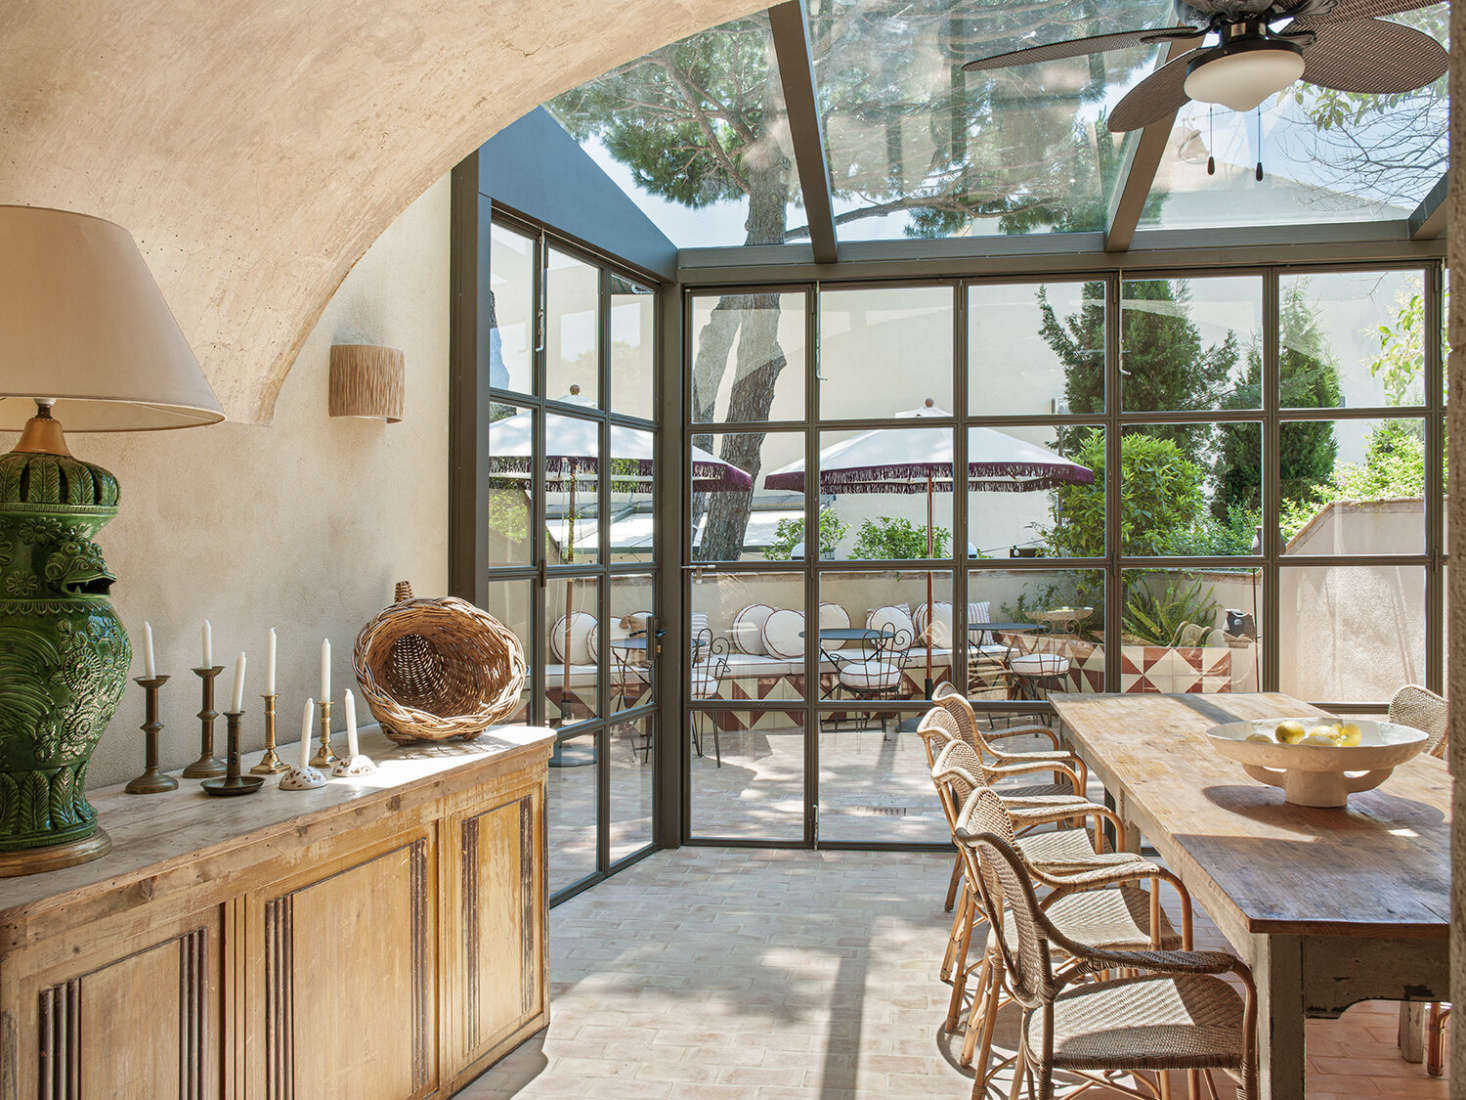 Most of the year, breakfast is served on the roof at a communal farmhouse table and outside on the terrace. The restaurant is for guests only, but on occasion special dinners and events are held here.